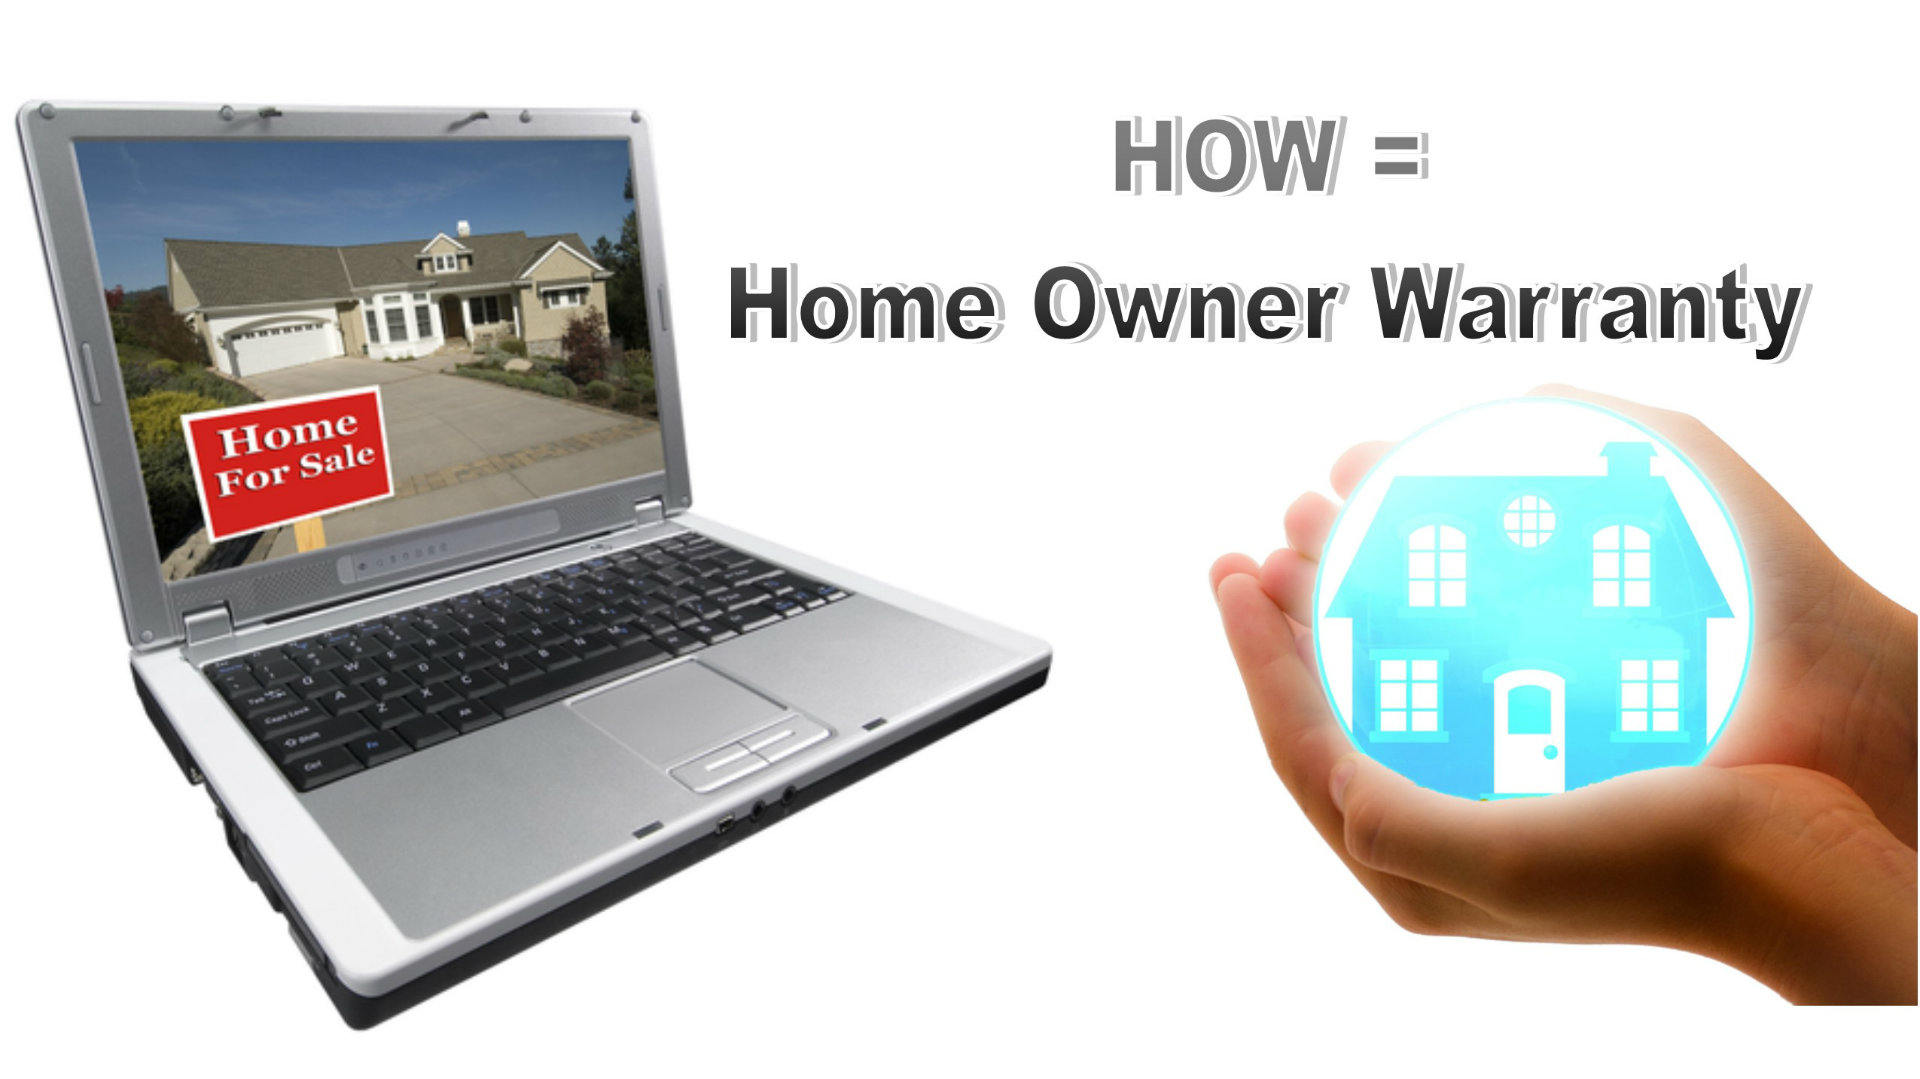 HOW, Home Owner Warranty, Limited Service Agreement, Greater, Bluffton, SC